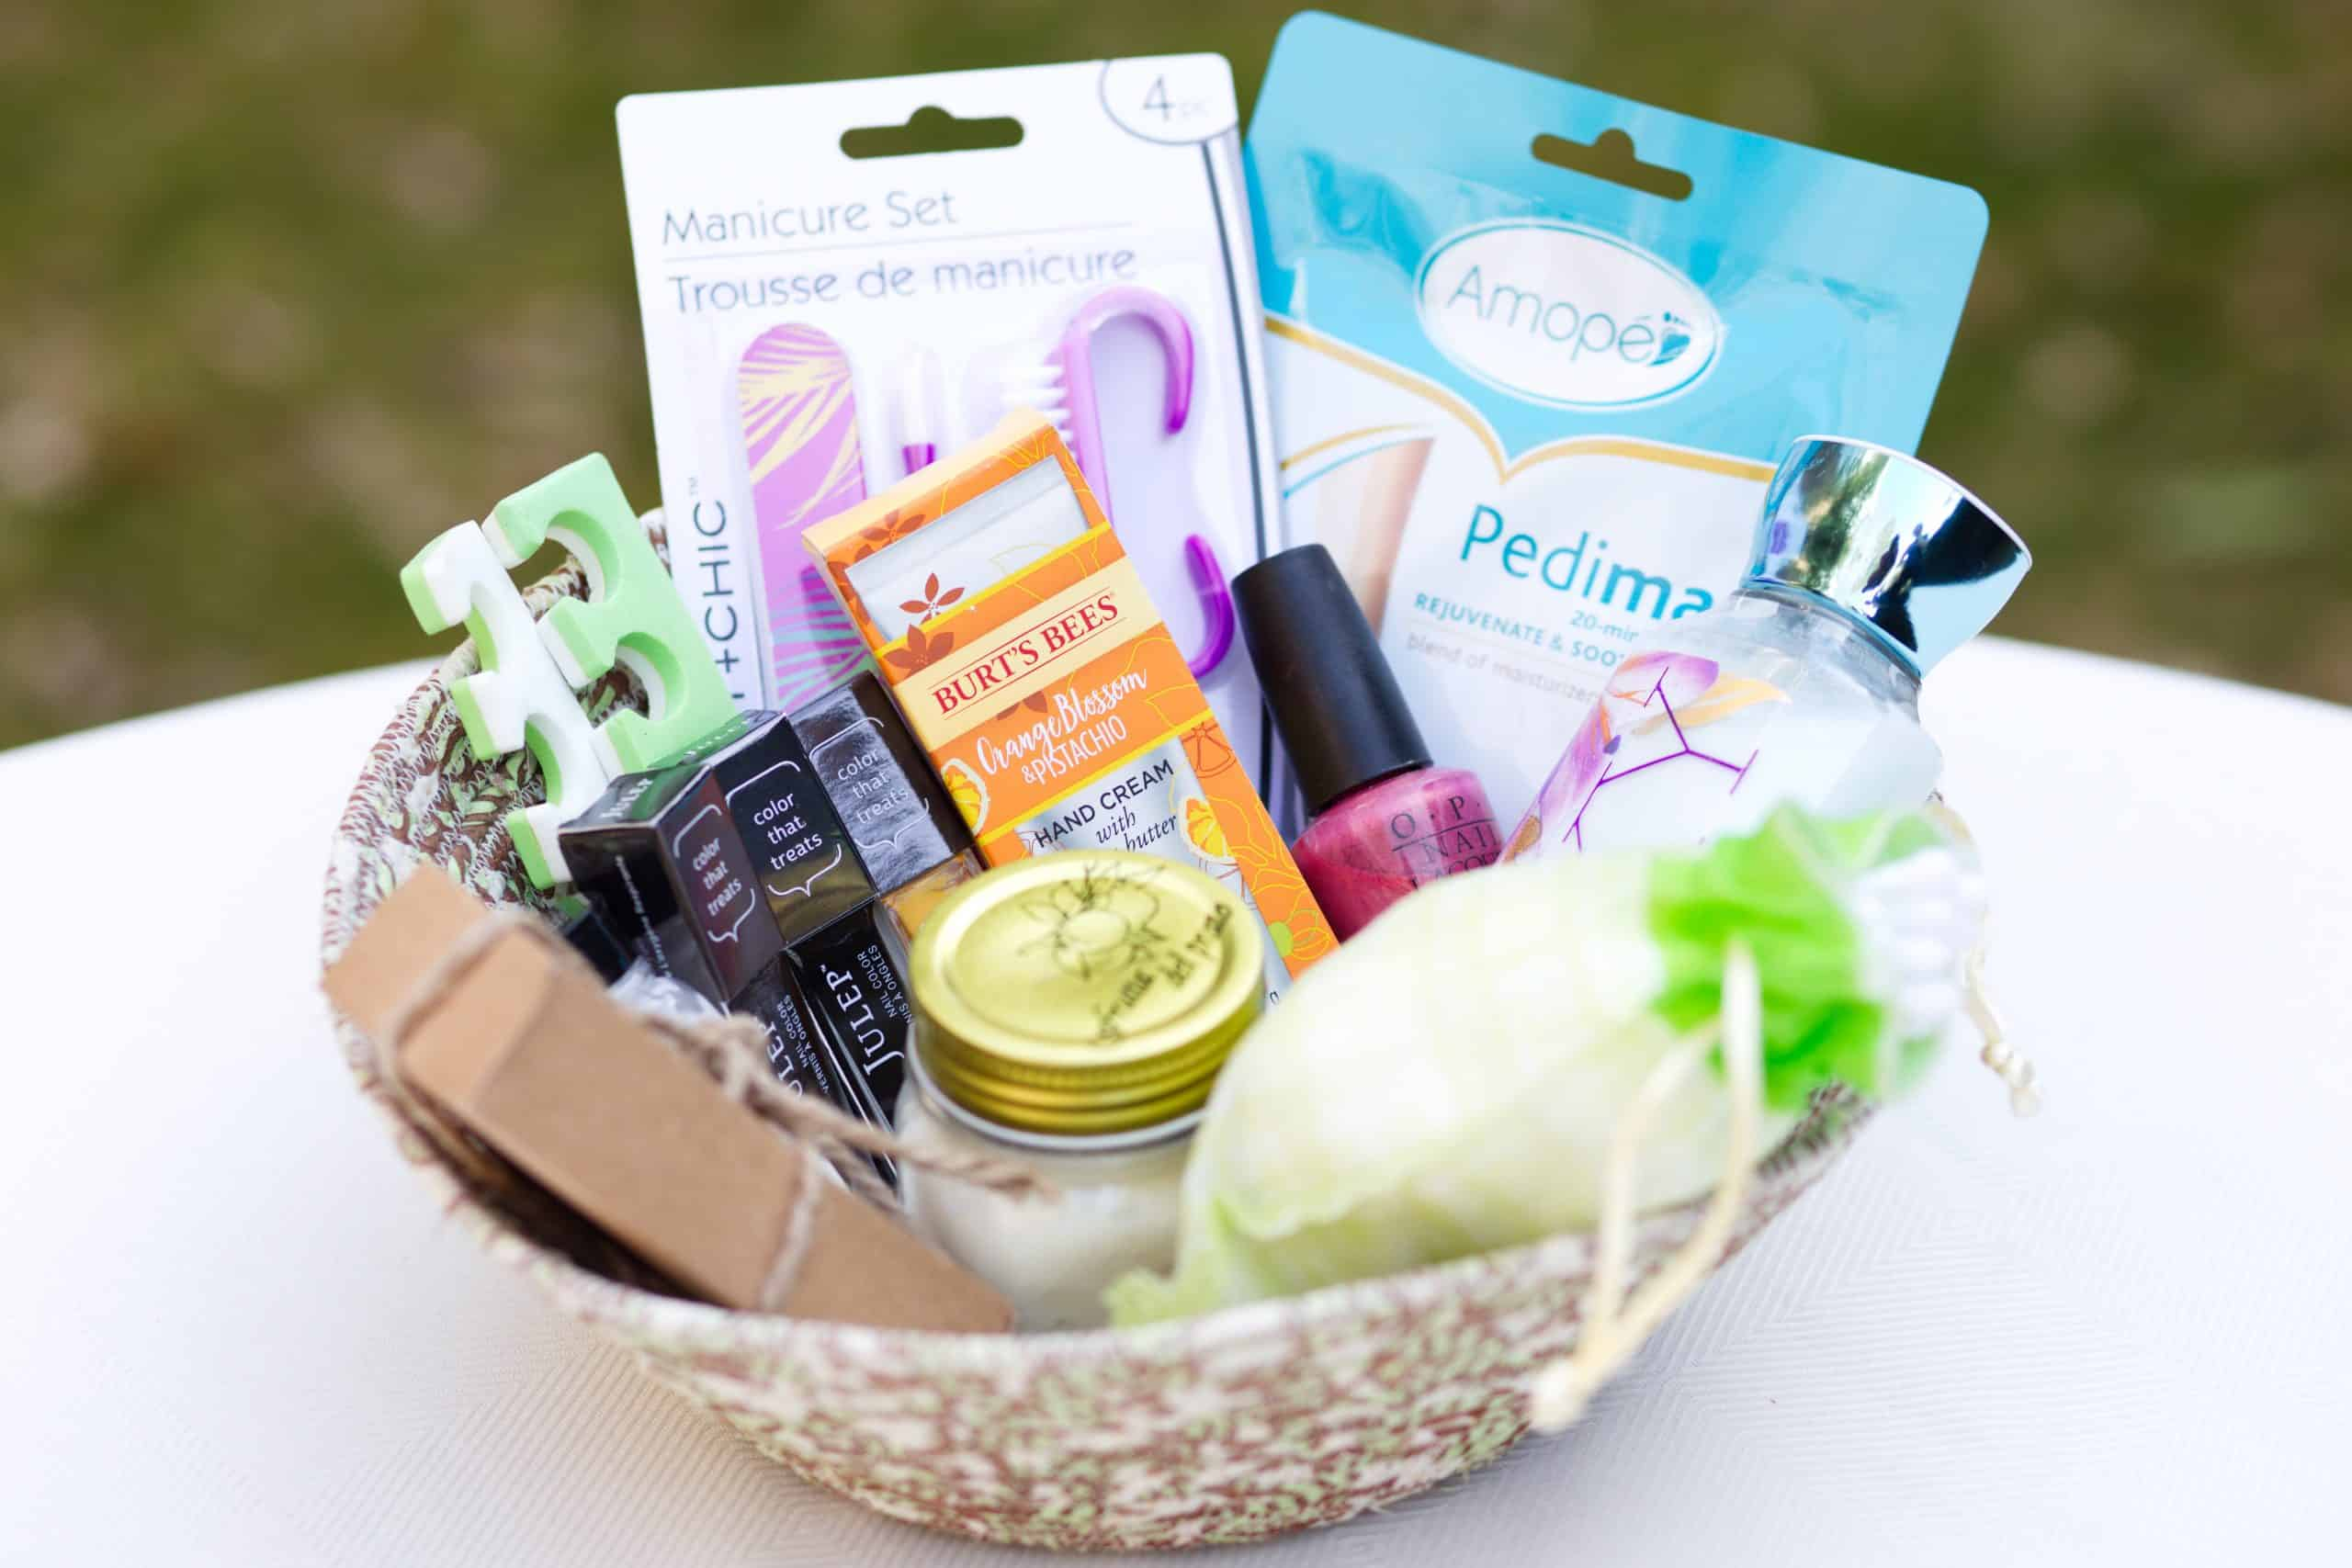 Homemade spa day gift basket - Basket filled with manicure pedicure items